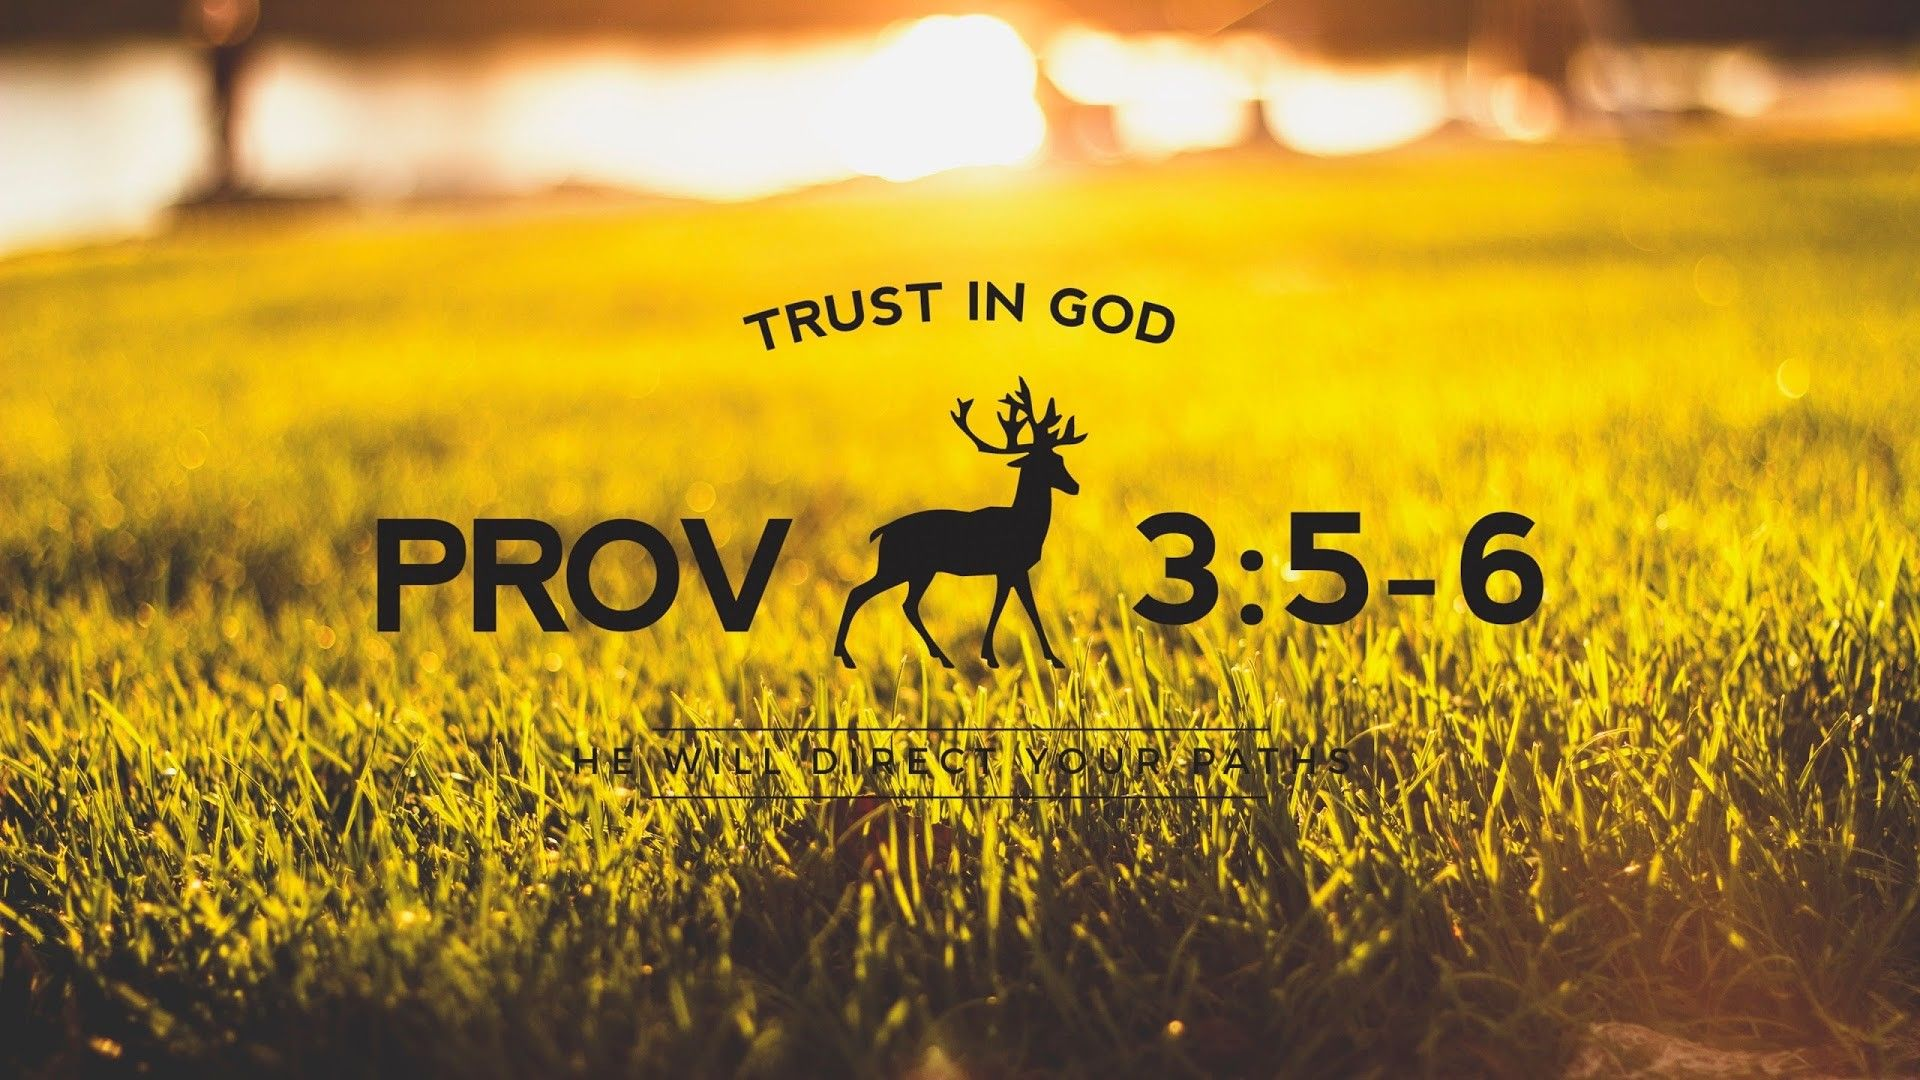 82 Bible Verse Wallpapers On Wallpaperplay In 2020 Bible Verse Wallpaper Christian Wallpaper Hd Wallpaper Bible